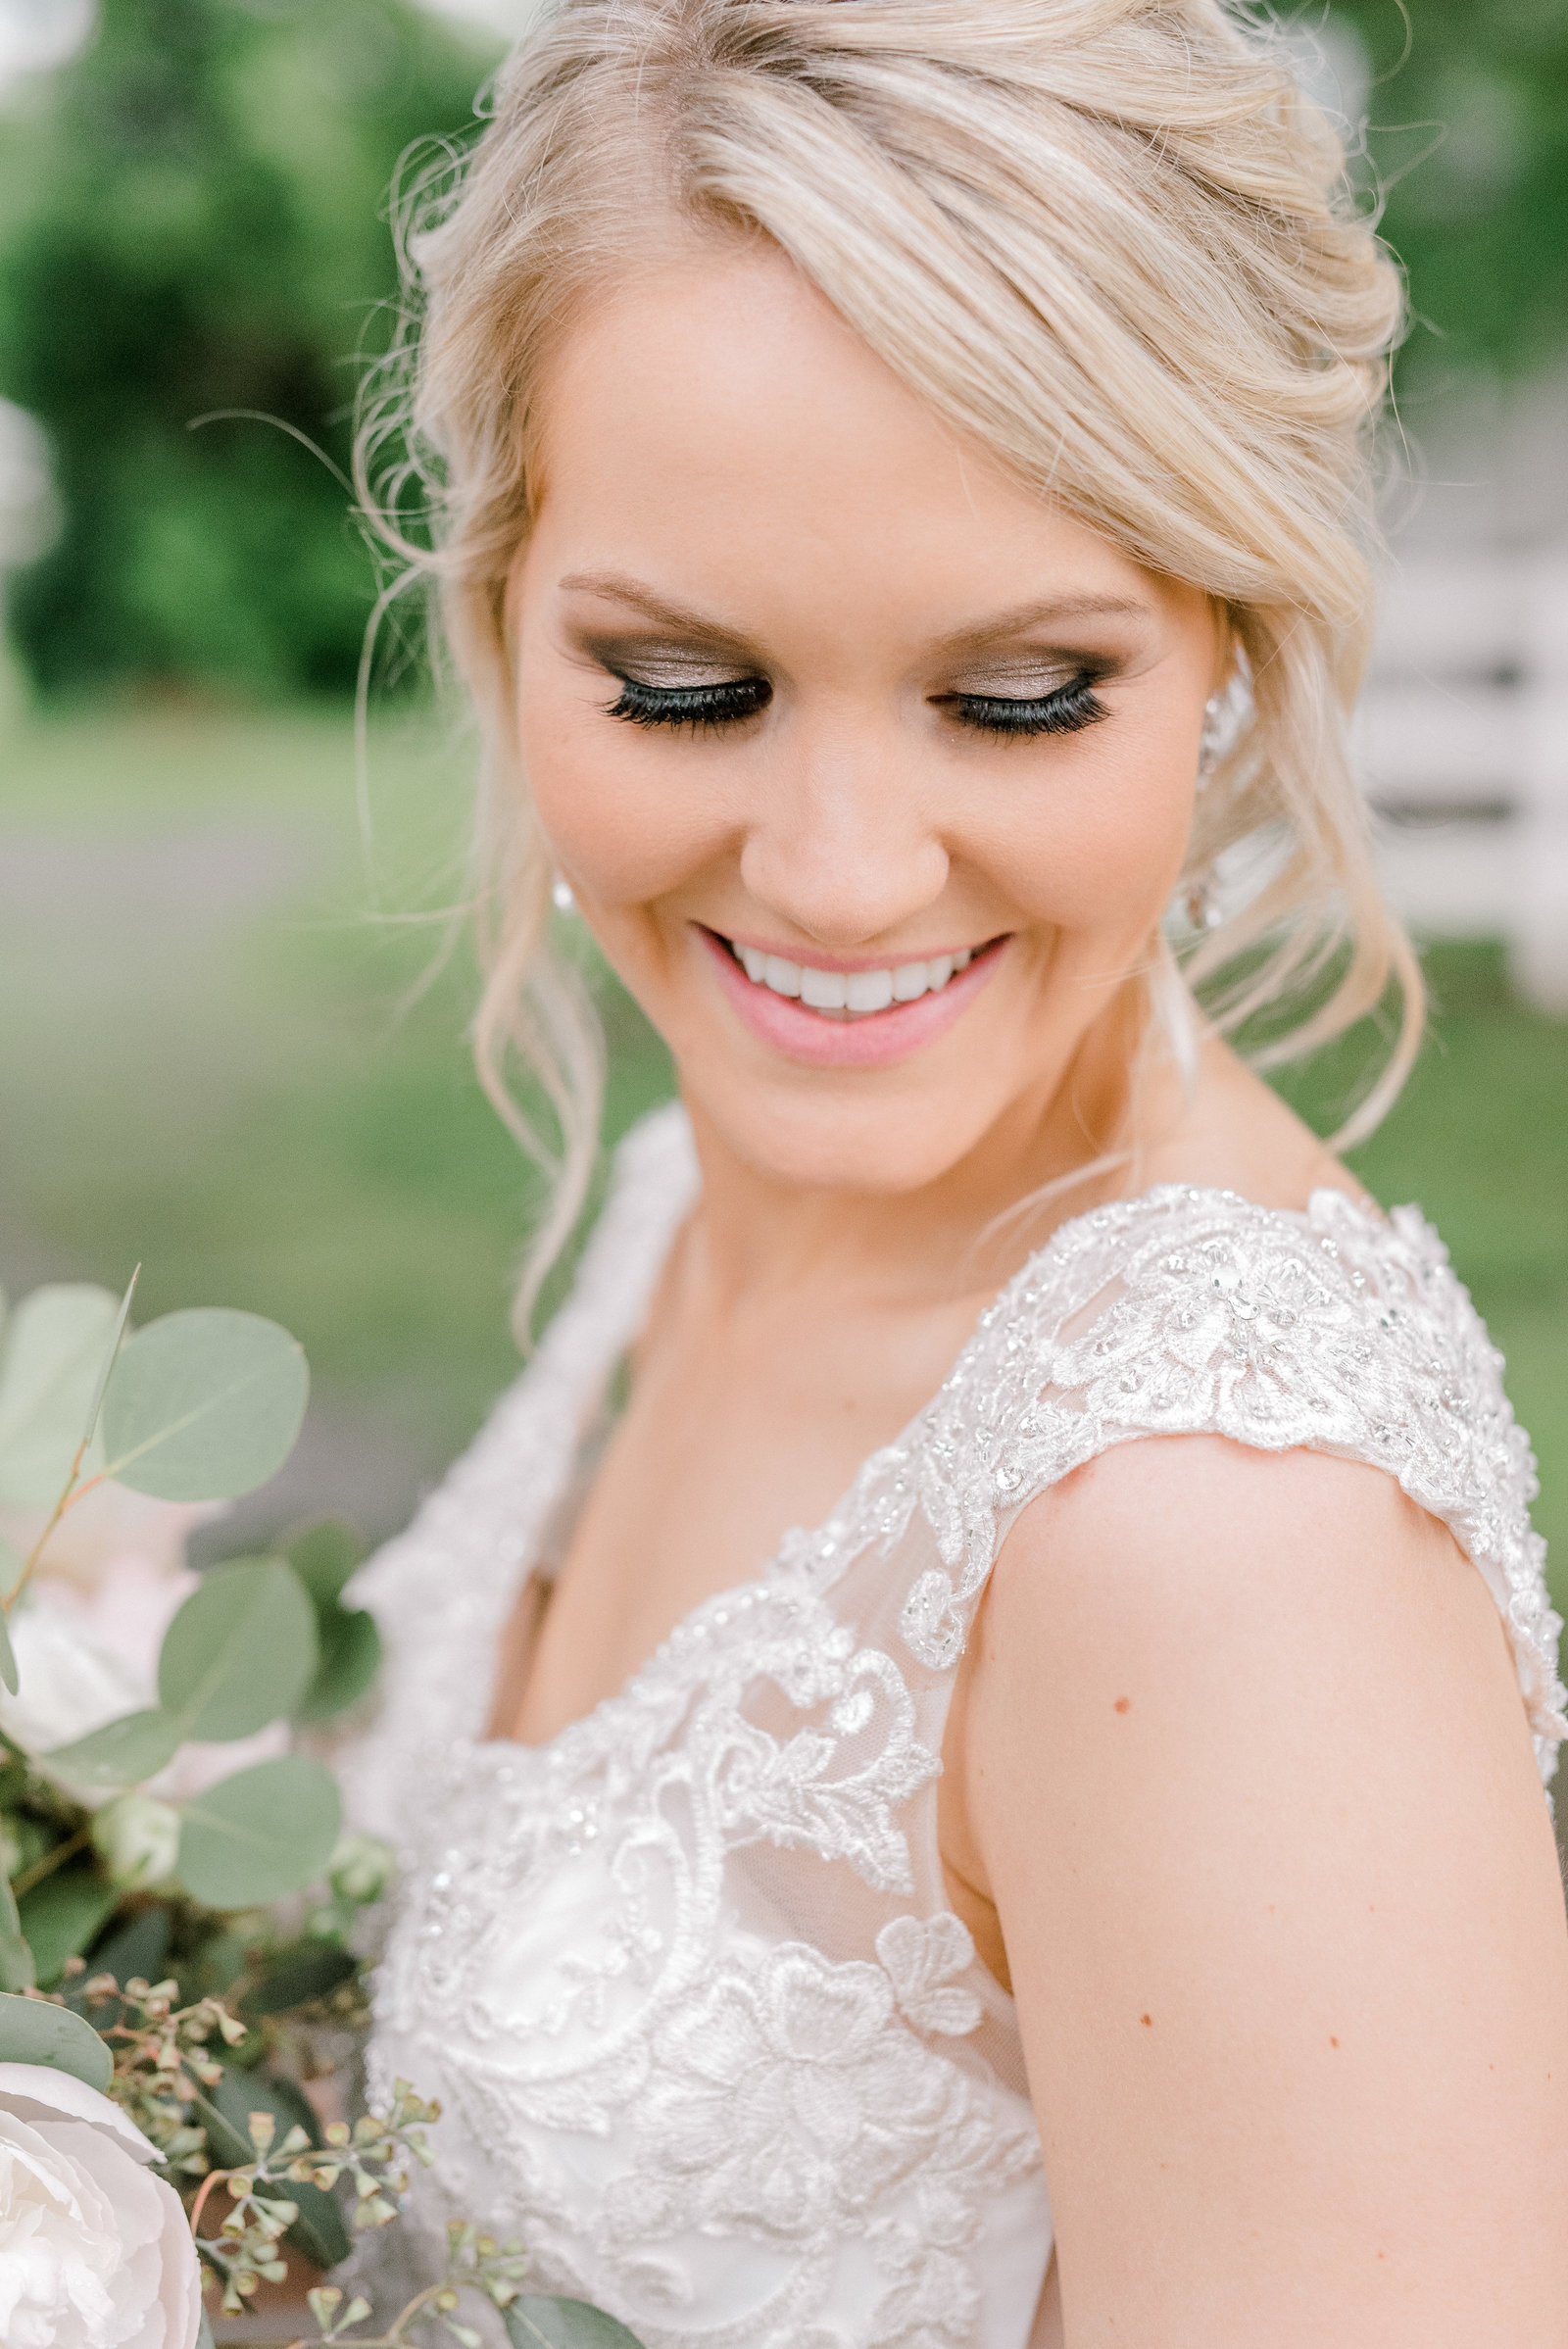 Stunning Bridal Portrait from Oak Alley Farms